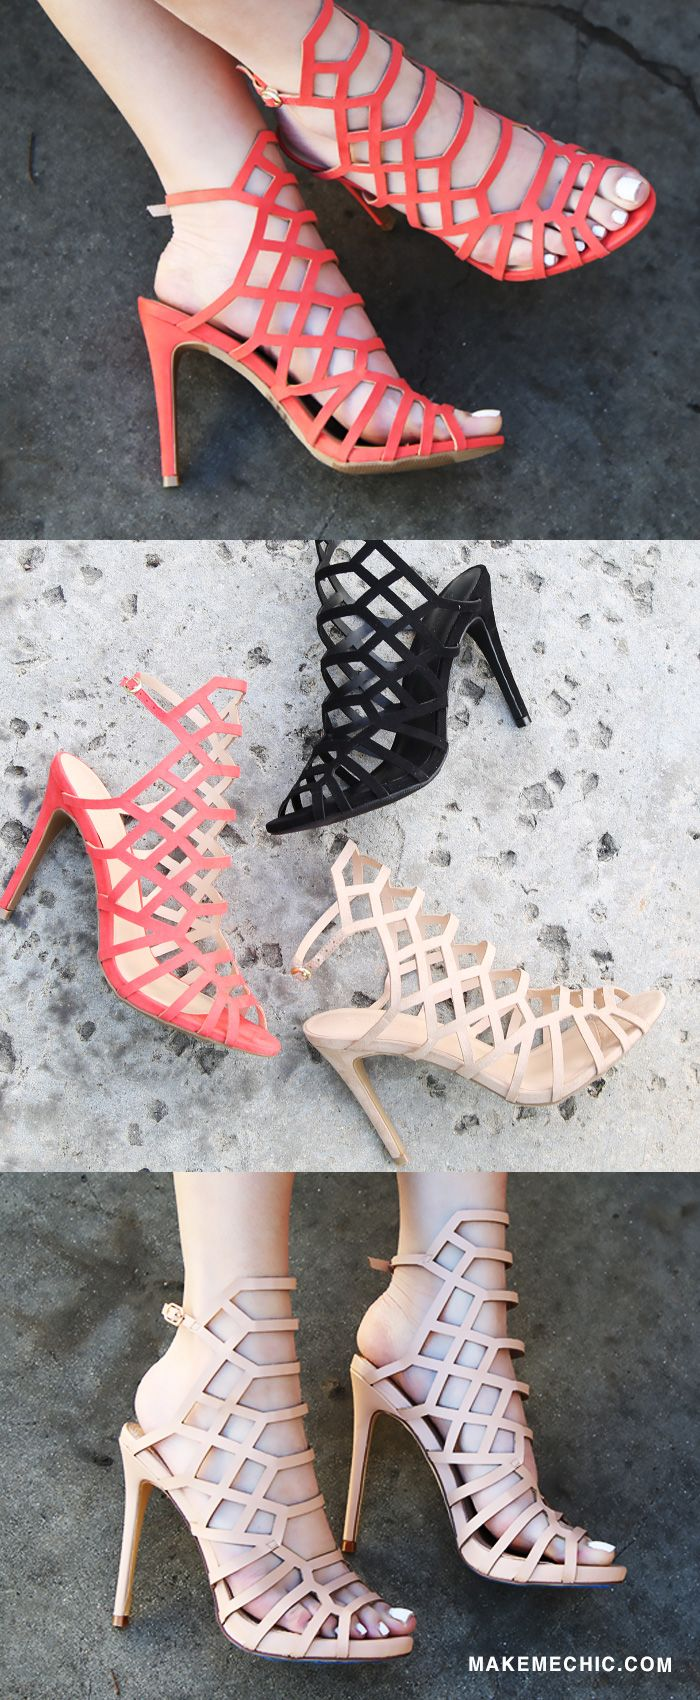 "Uh huh honey, the Honeycomb Stiletto Heels is sure to sweeten up any look! Features a peep toe, geometric honeycomb cut, and backless design. Topped off with a 4.5"" stiletto heel, adjustable ankle strap, and slightly padded insole for added comfort. Team with a luxurious vest for a glammed up vibe!"